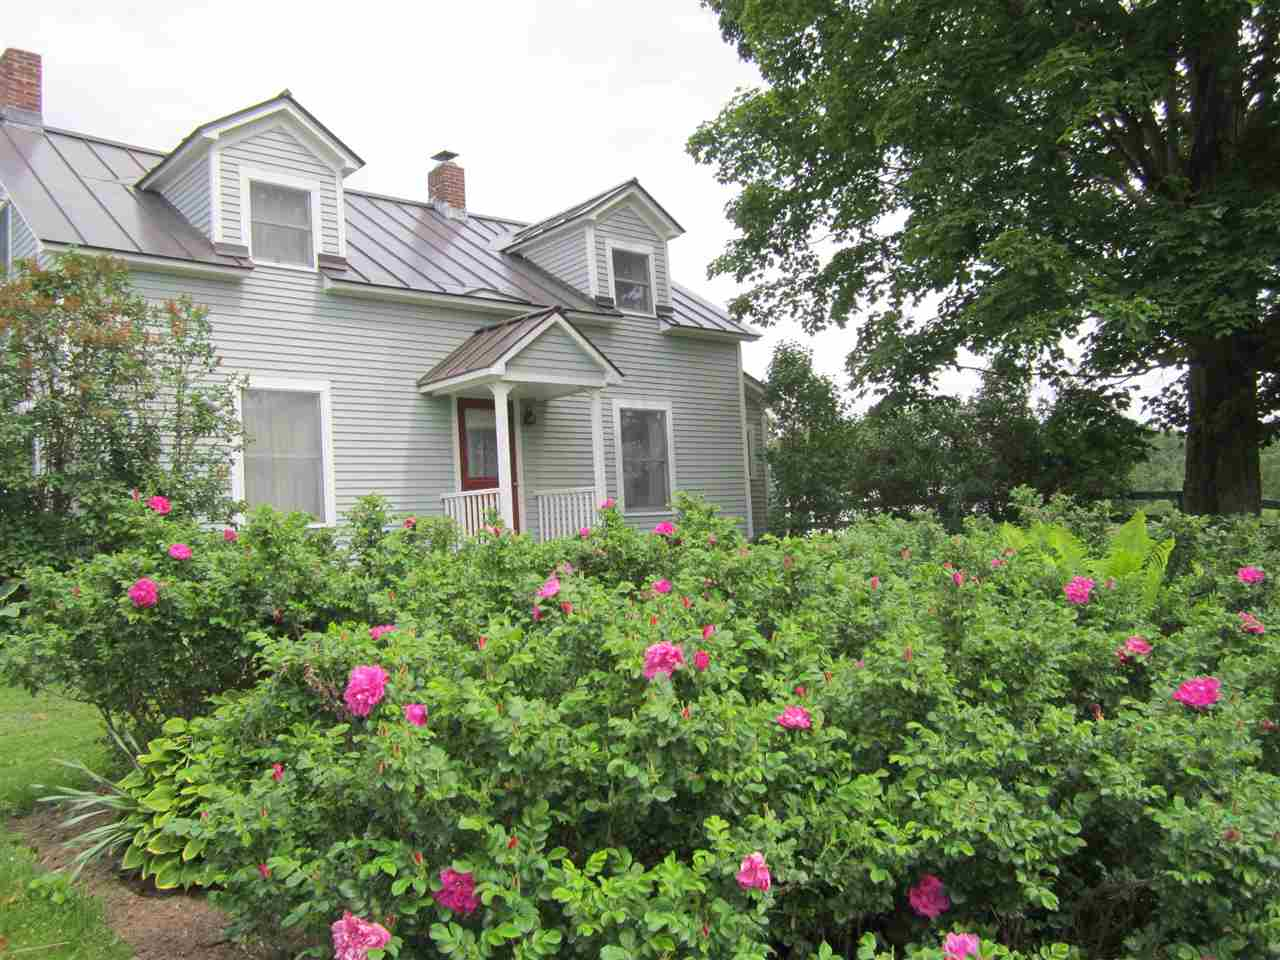 Front of House with Roses